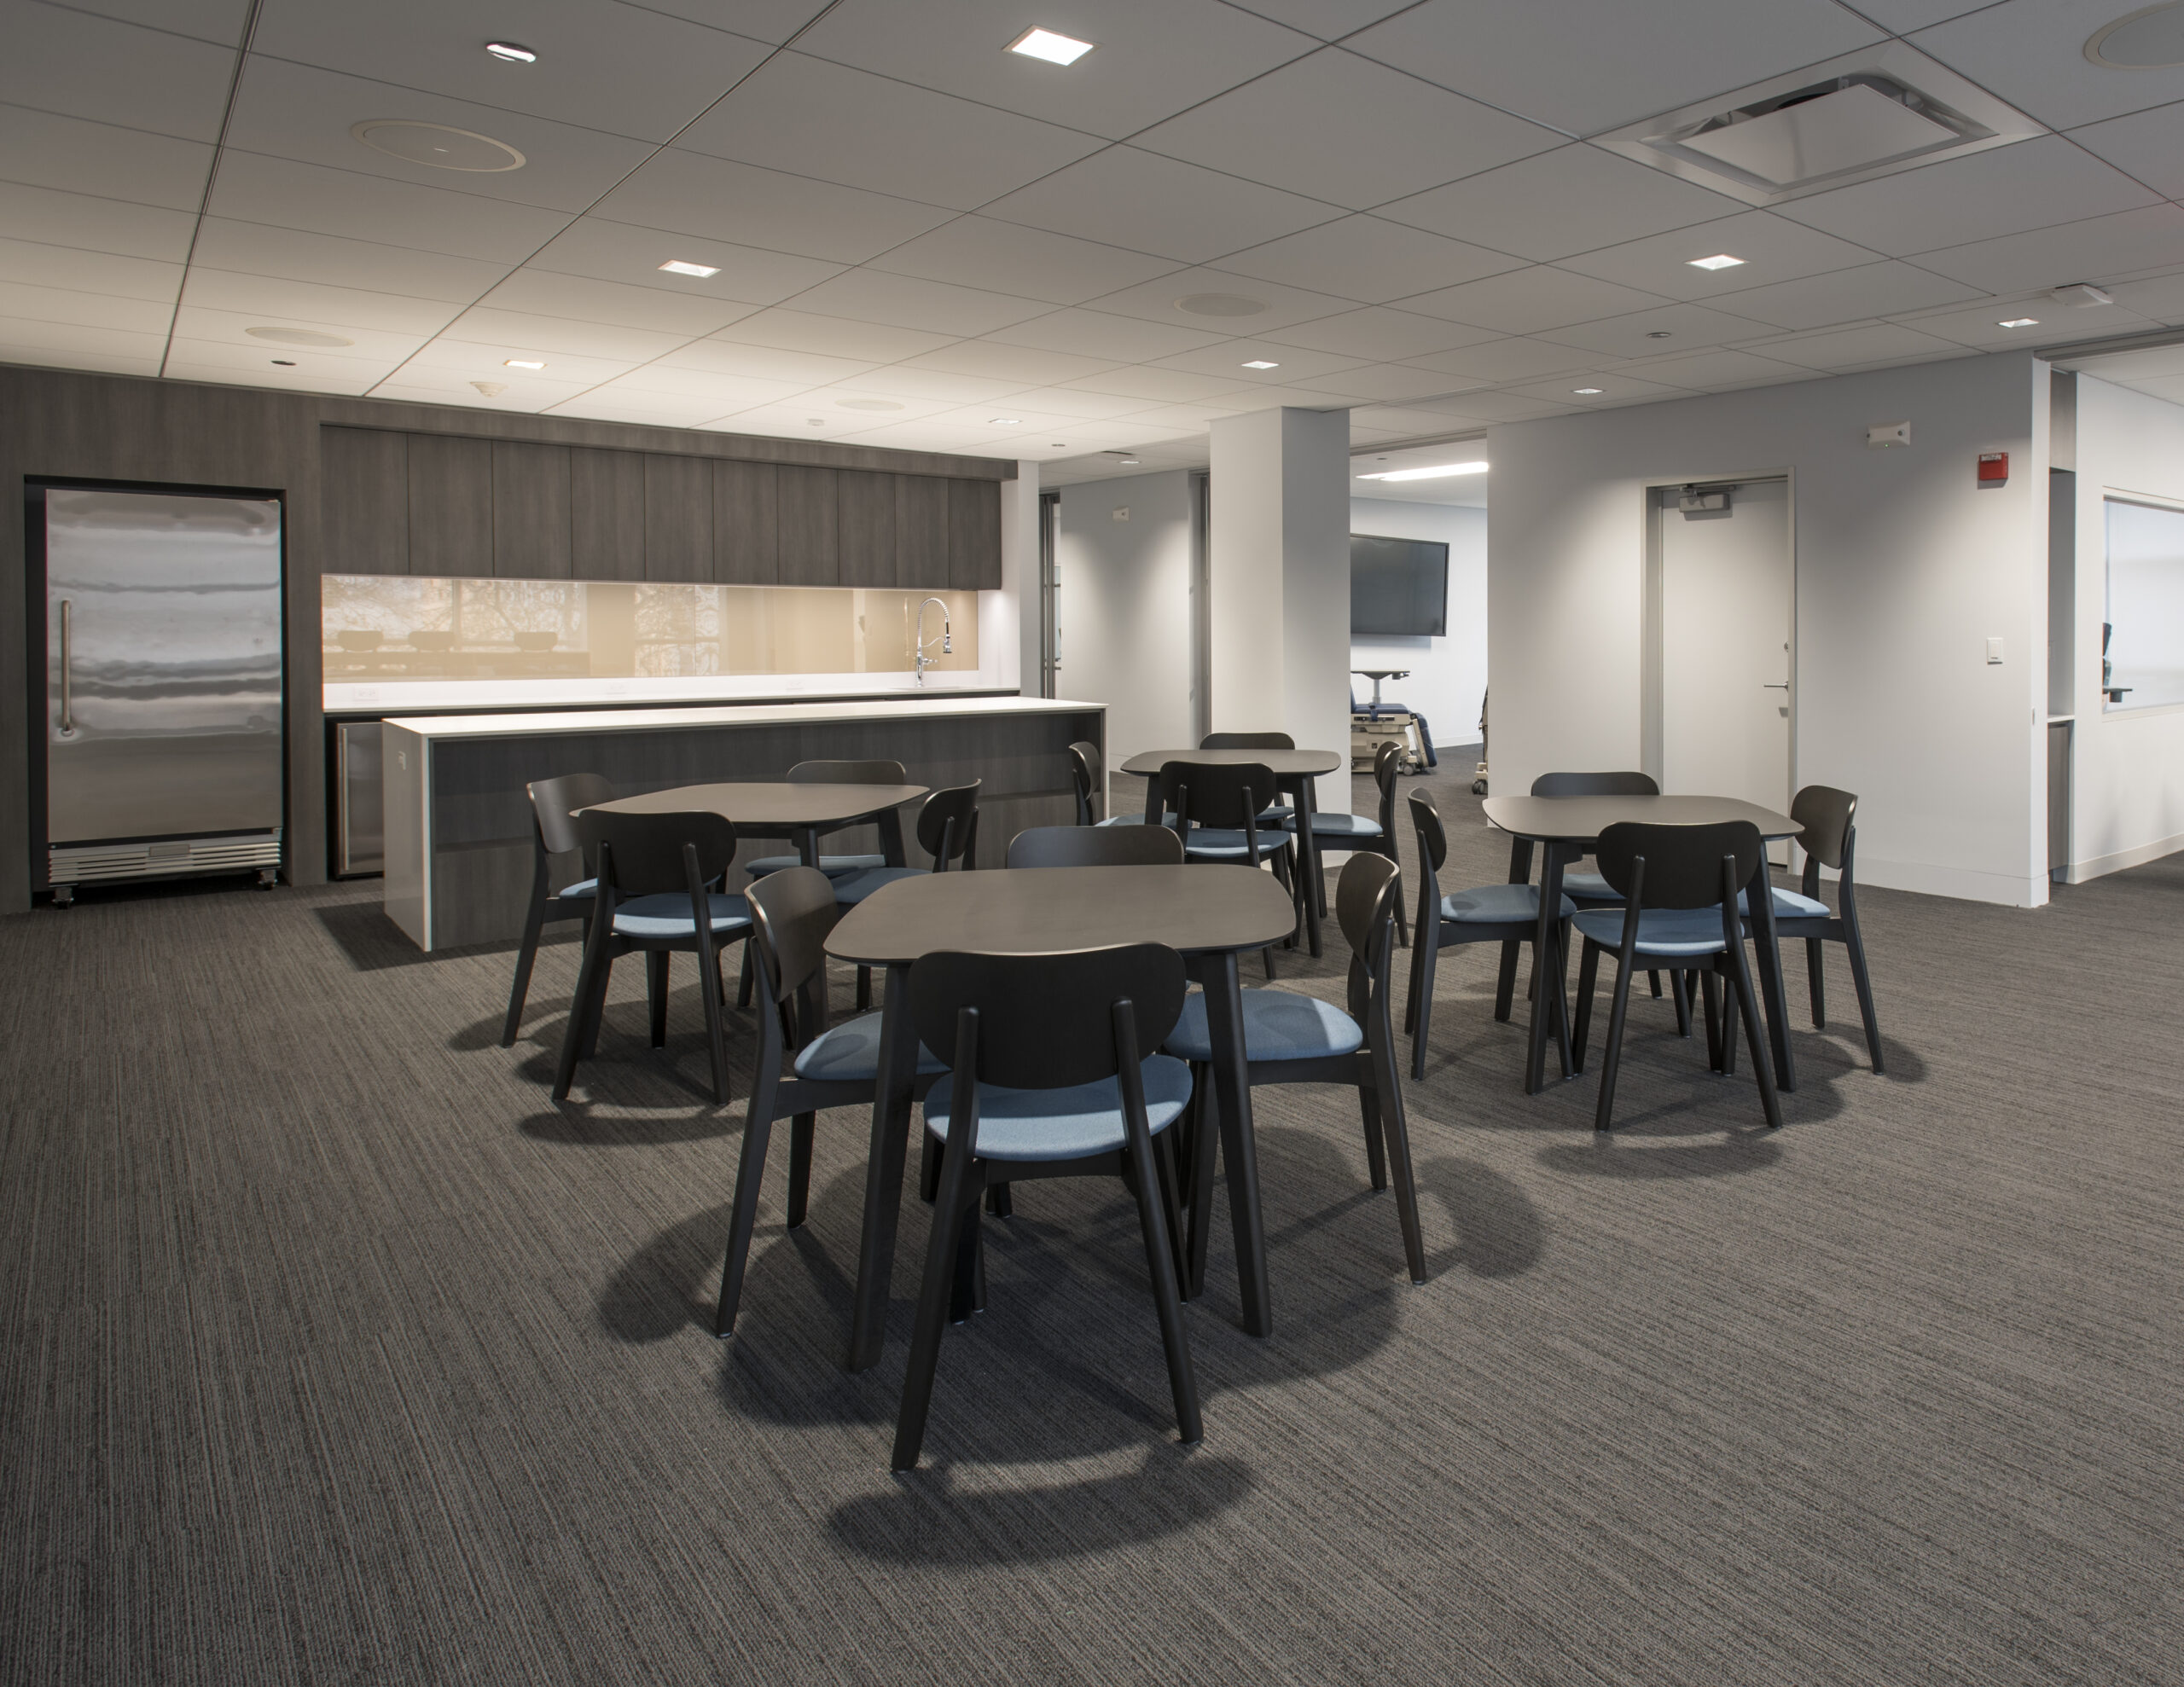 Pantry and dining area at AAOMS.